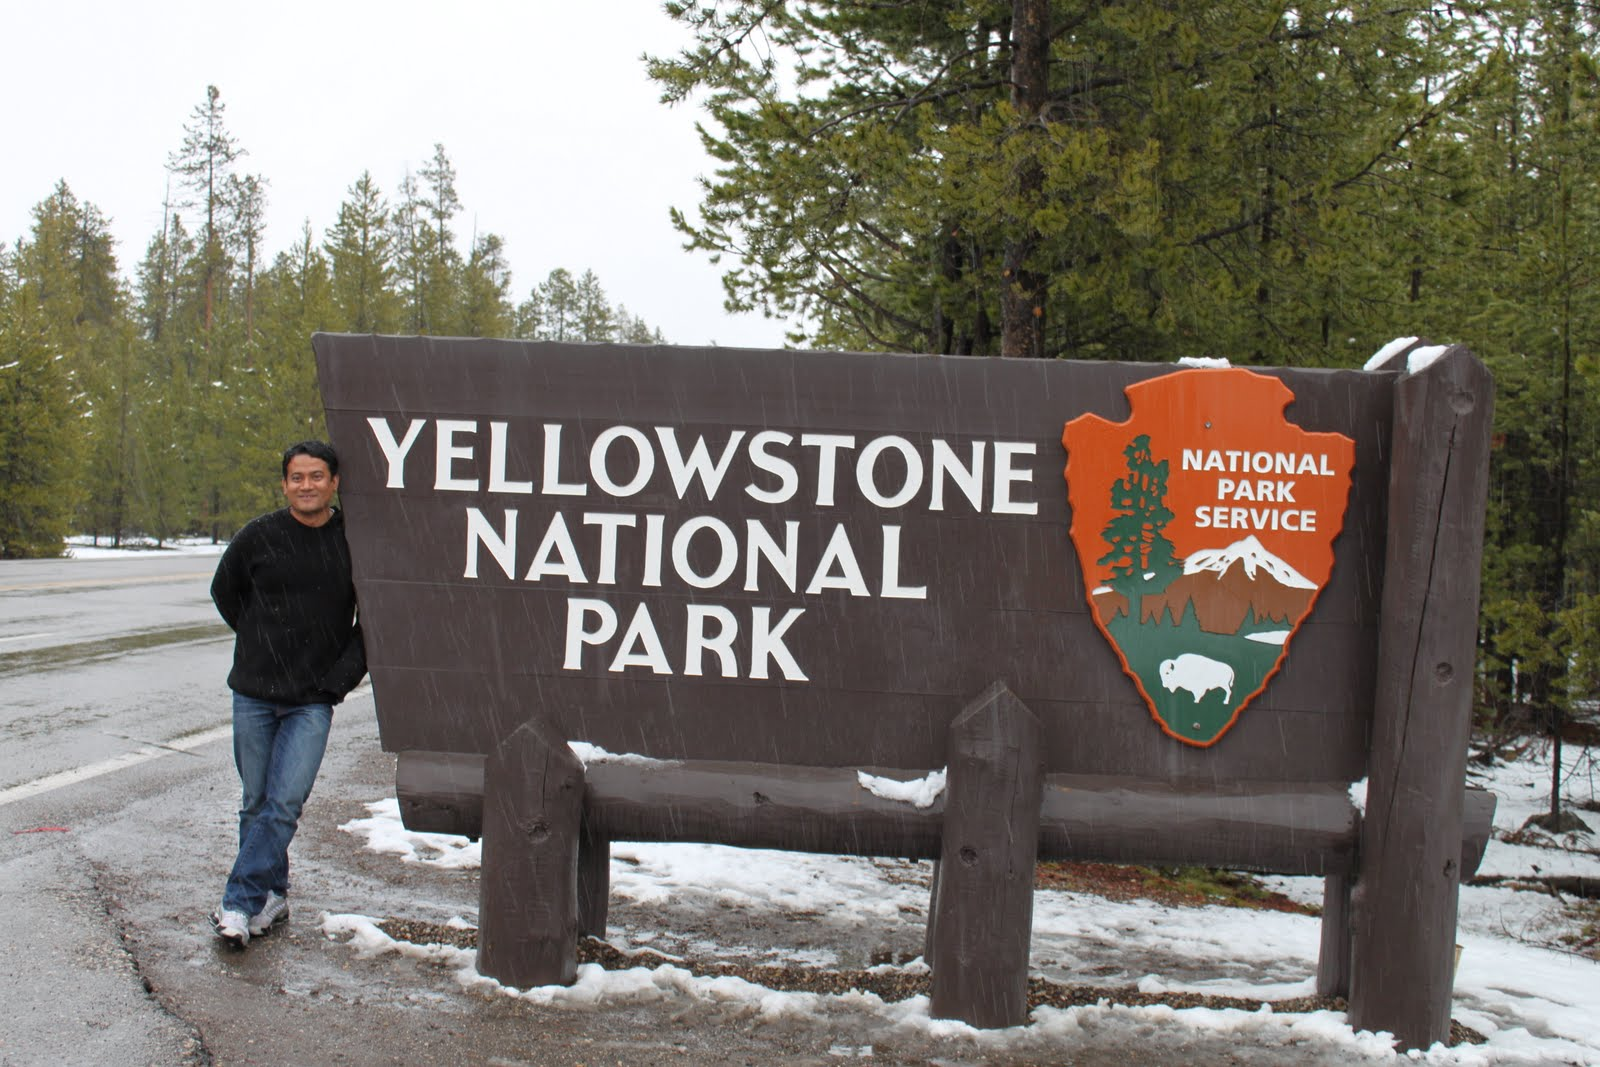 driving distance from boise to west yellowstone this is small town in montana where west entrance of the park is located is 387 miles and travel time is